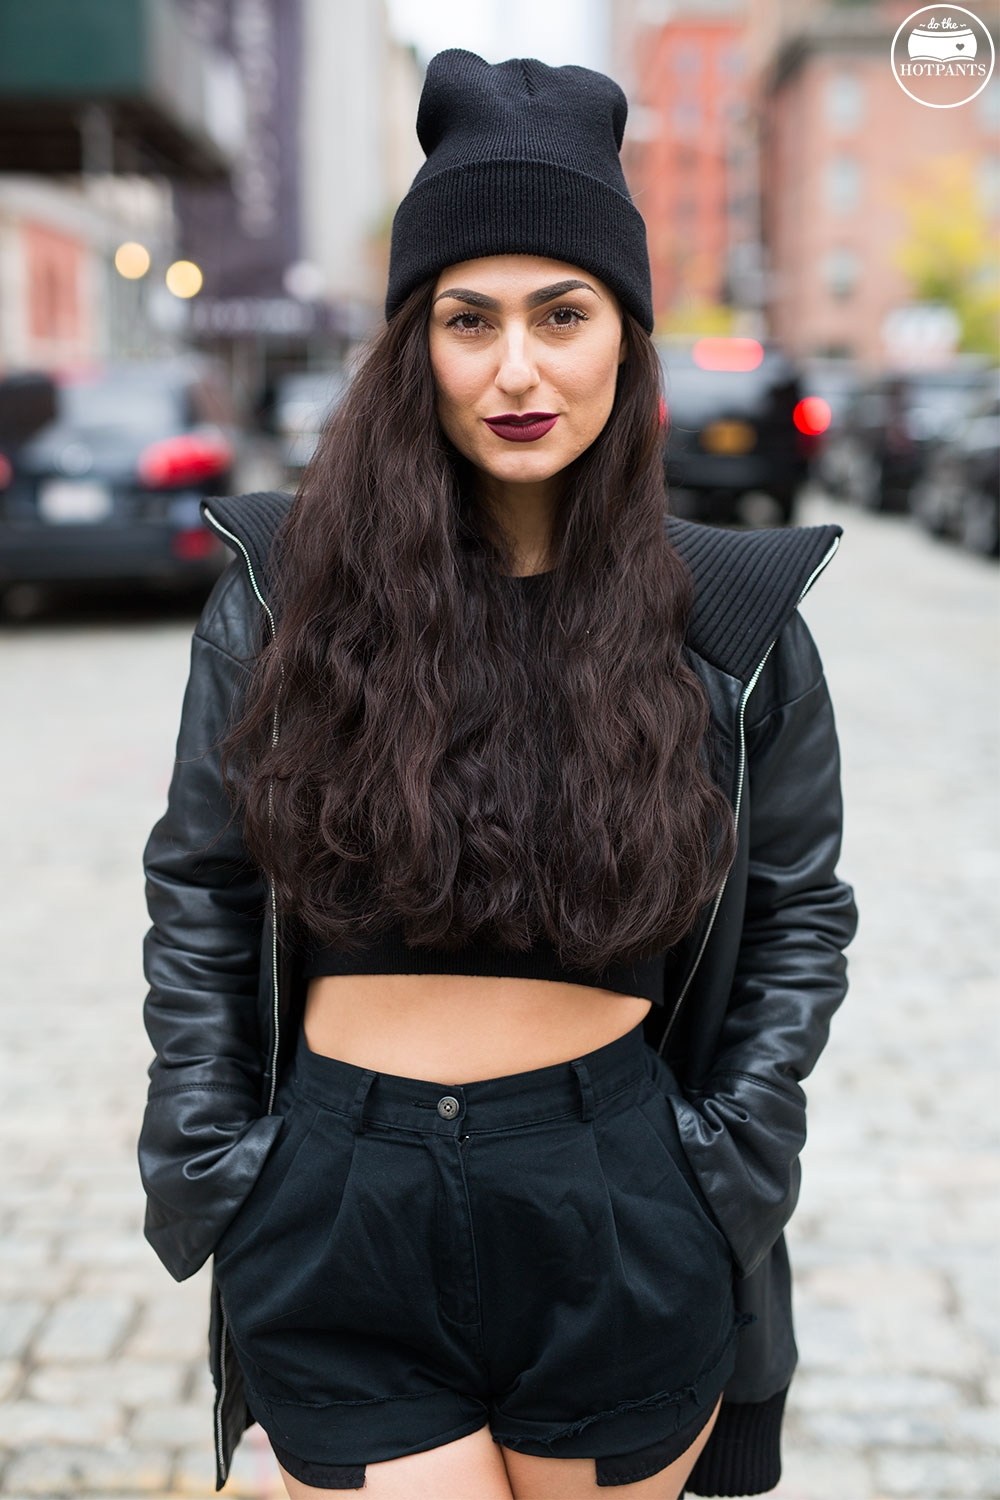 Do The Hotpants Dana Suchow Goth Outfit Black Beanie Thigh High Socks Crop Top Black Leather Jacket_M8A0295